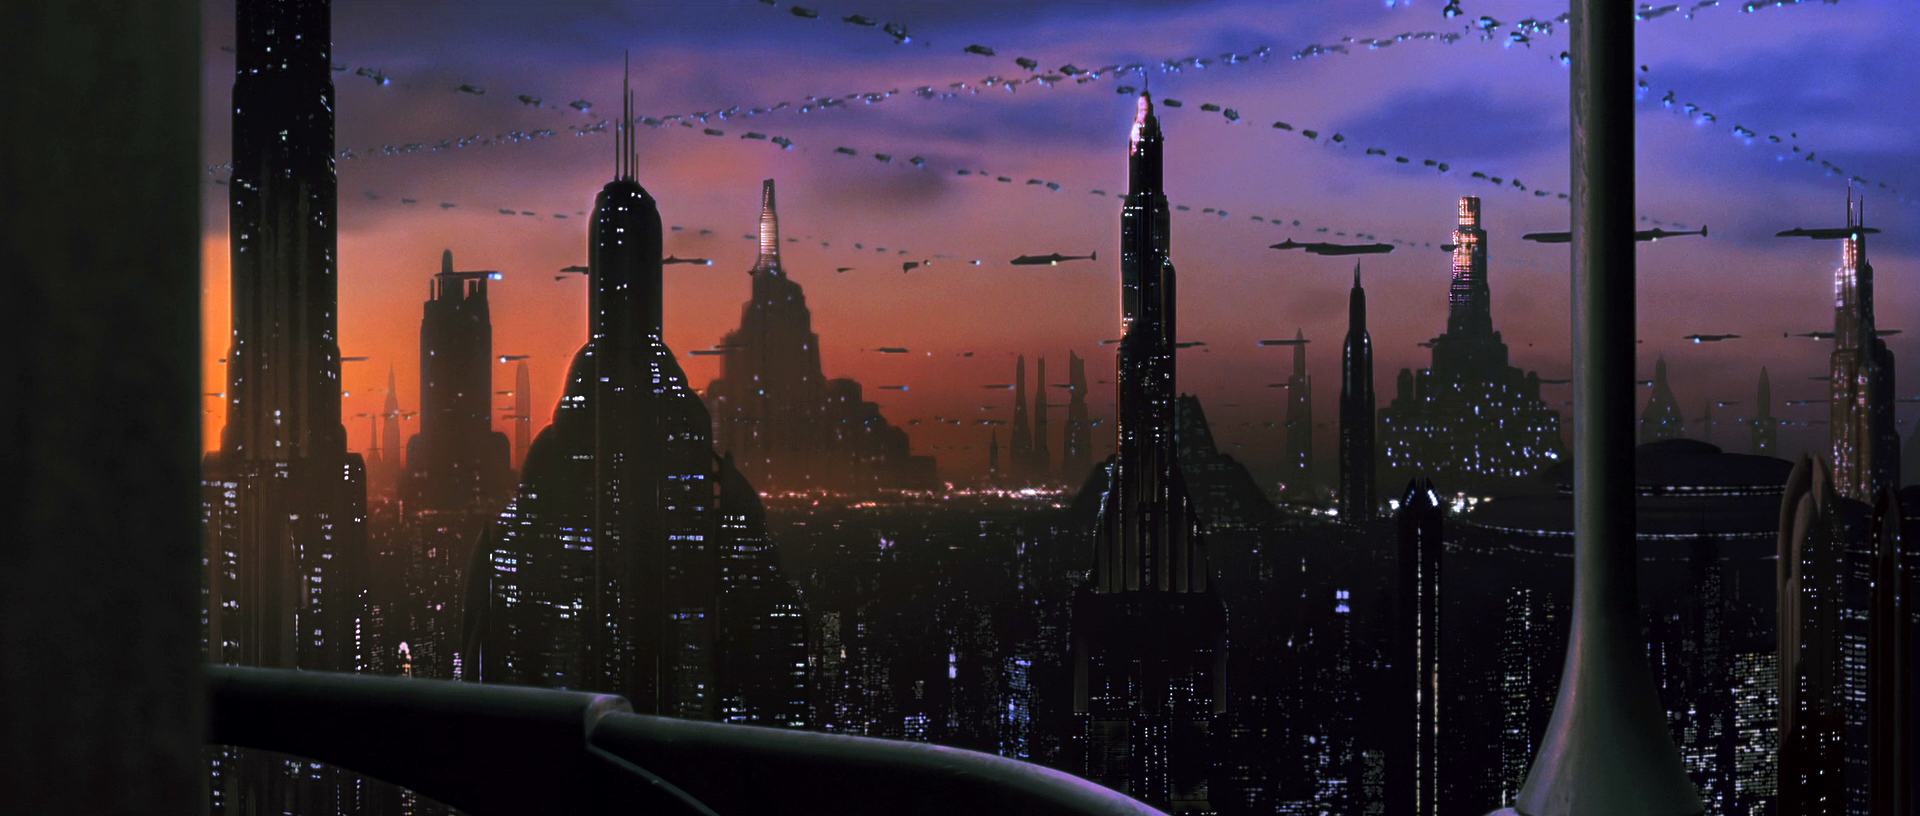 Coruscant_traffic.png